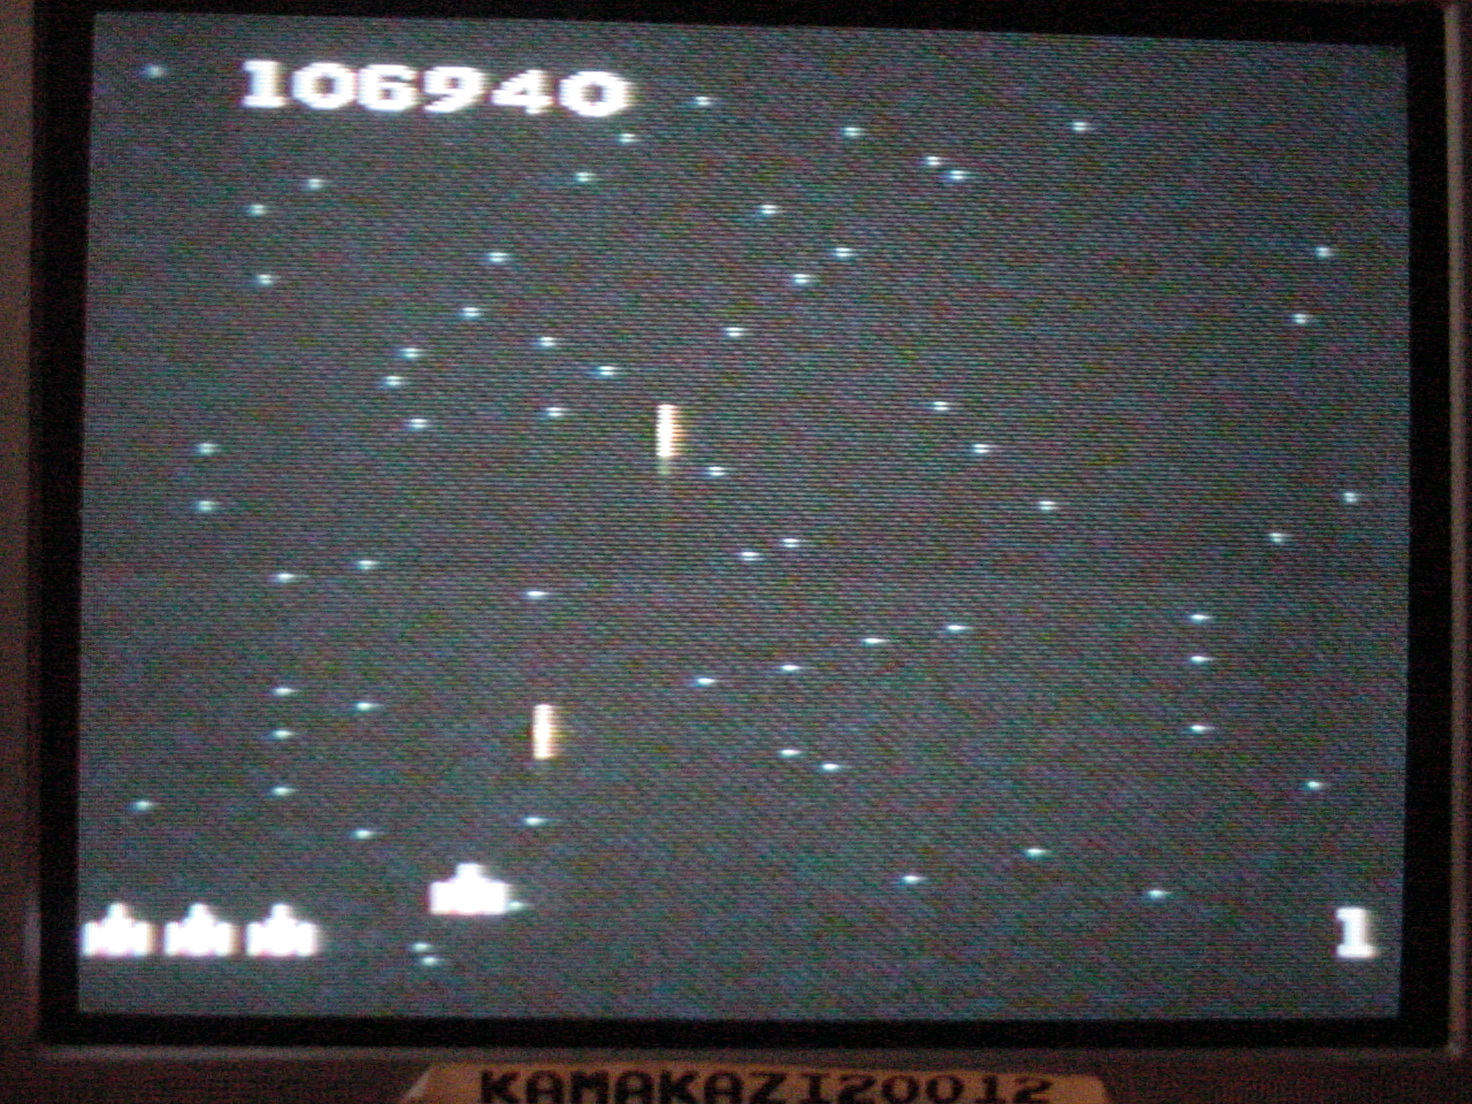 Galaga: Novice 106,940 points